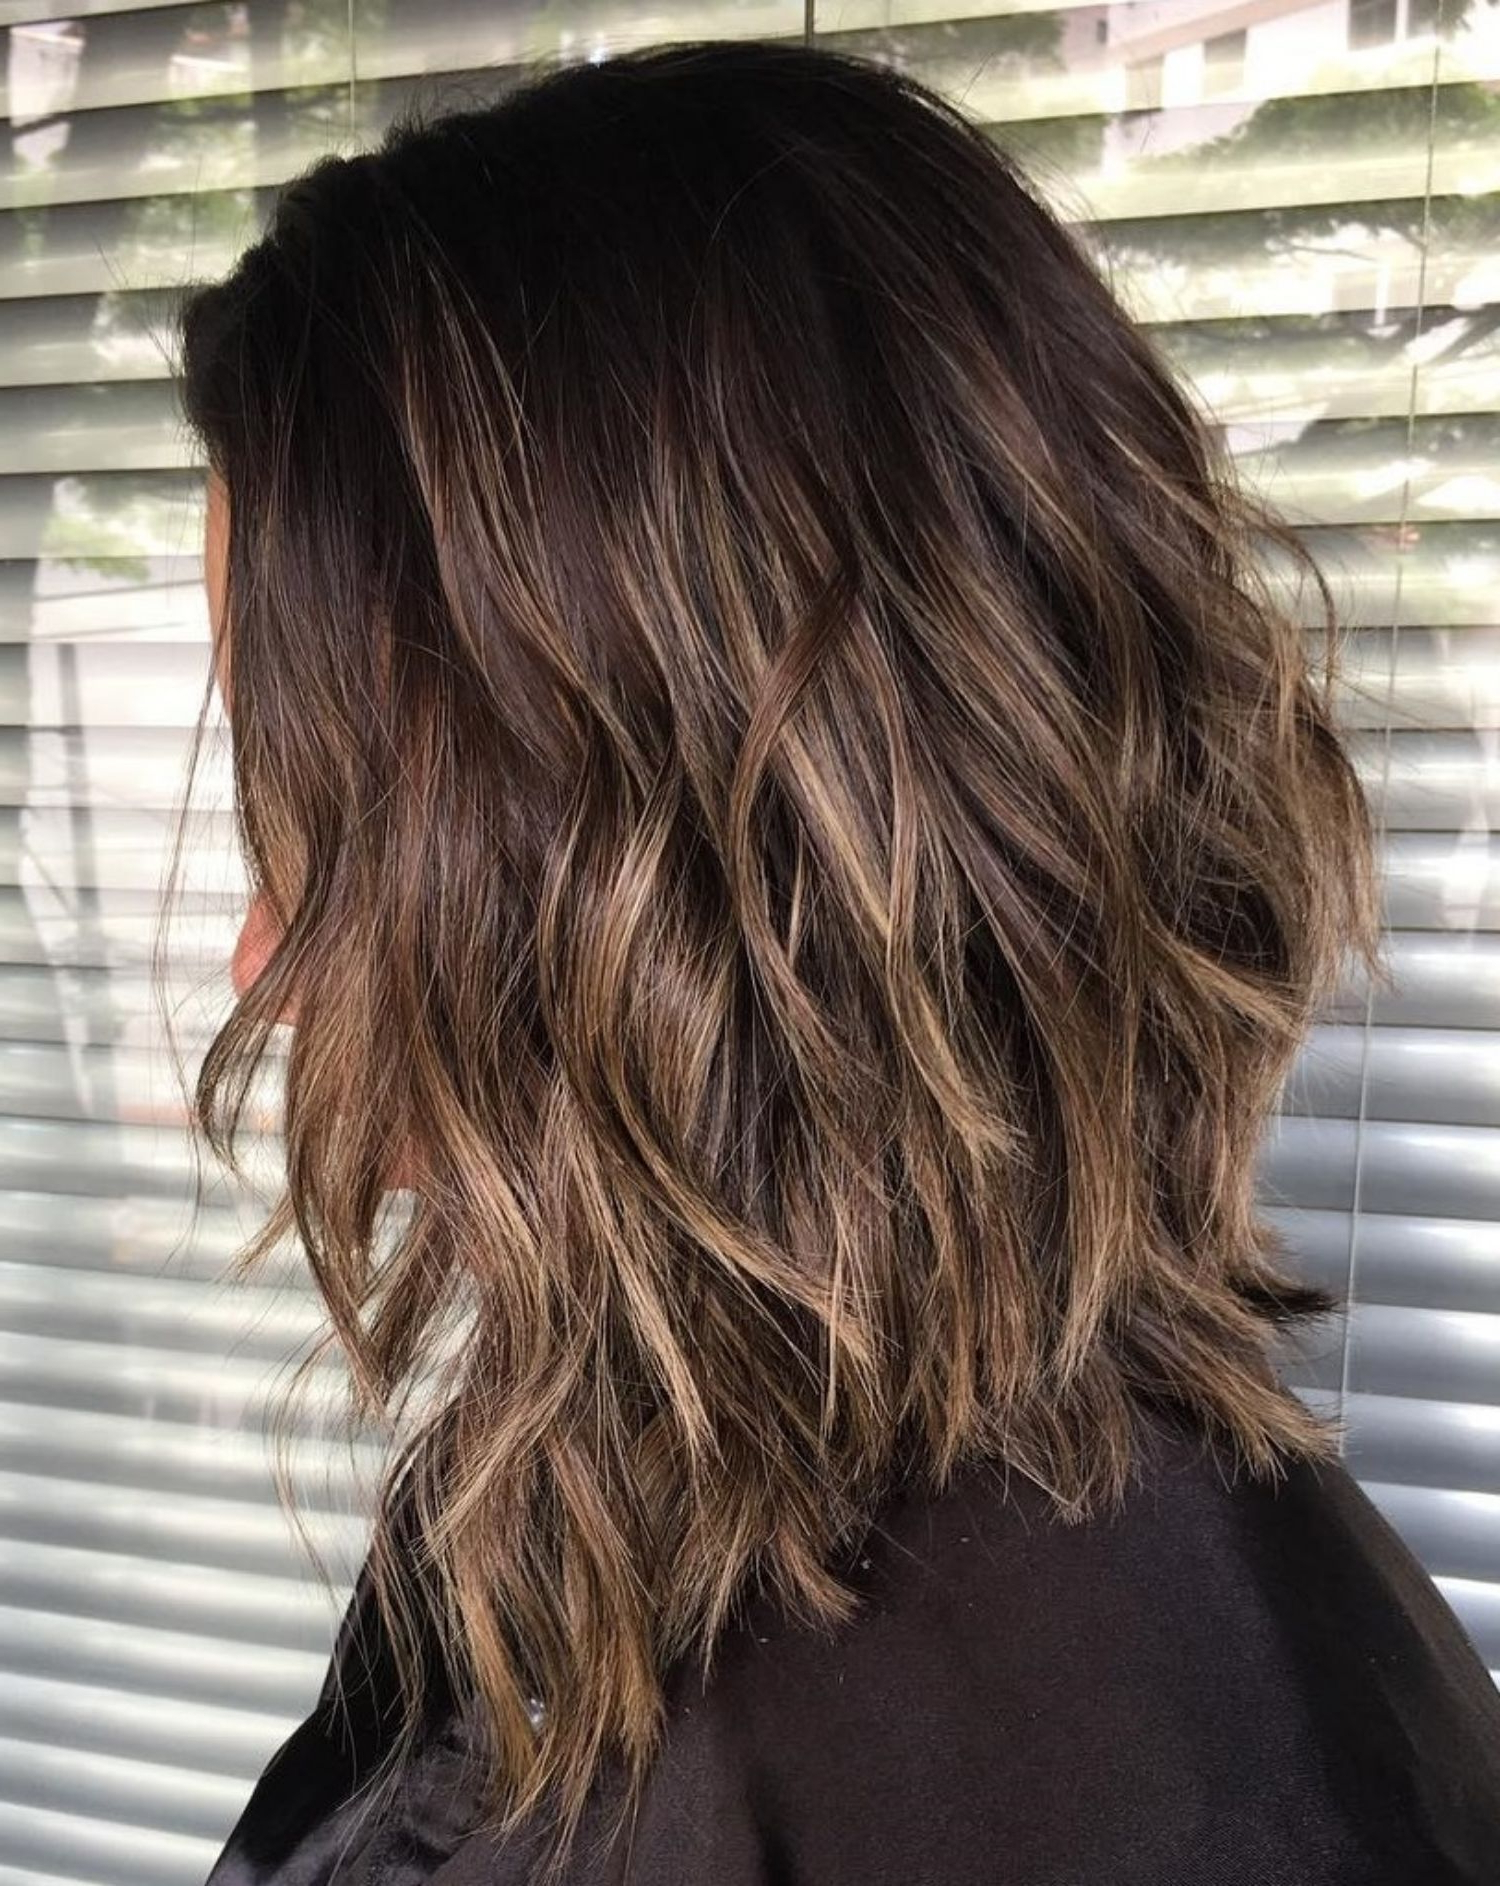 Pin On Hairstyles Haircuts Intended For Trendy Long Haircuts With Chunky Angled Layers (Gallery 3 of 20)